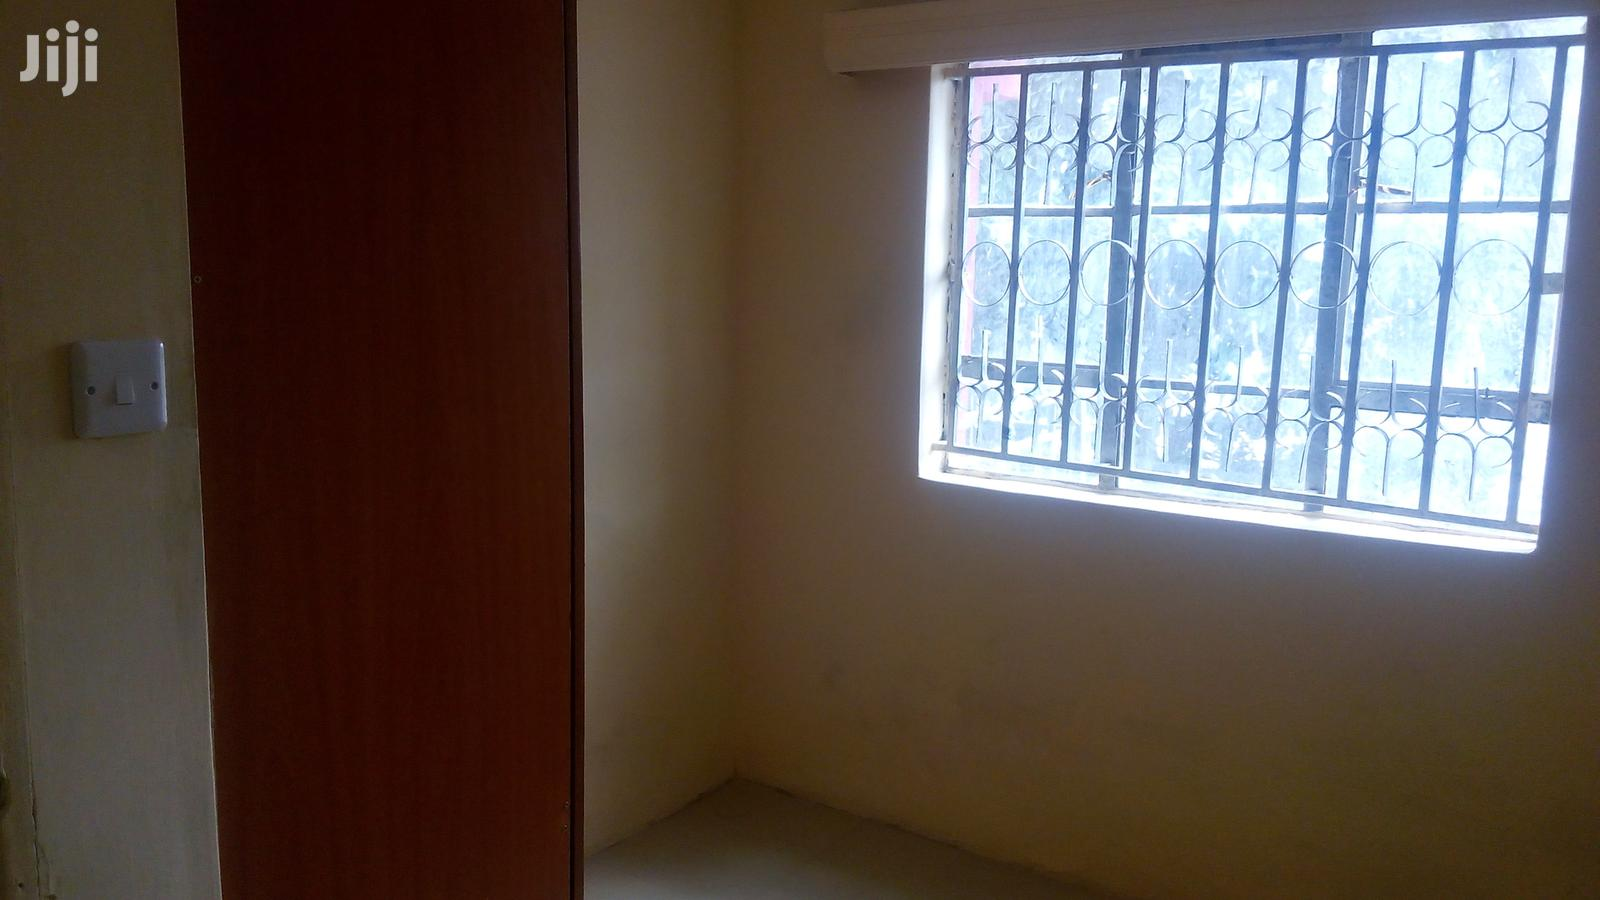 One Bedroomed House For Rent | Houses & Apartments For Rent for sale in Ongata Rongai, Kajiado, Kenya